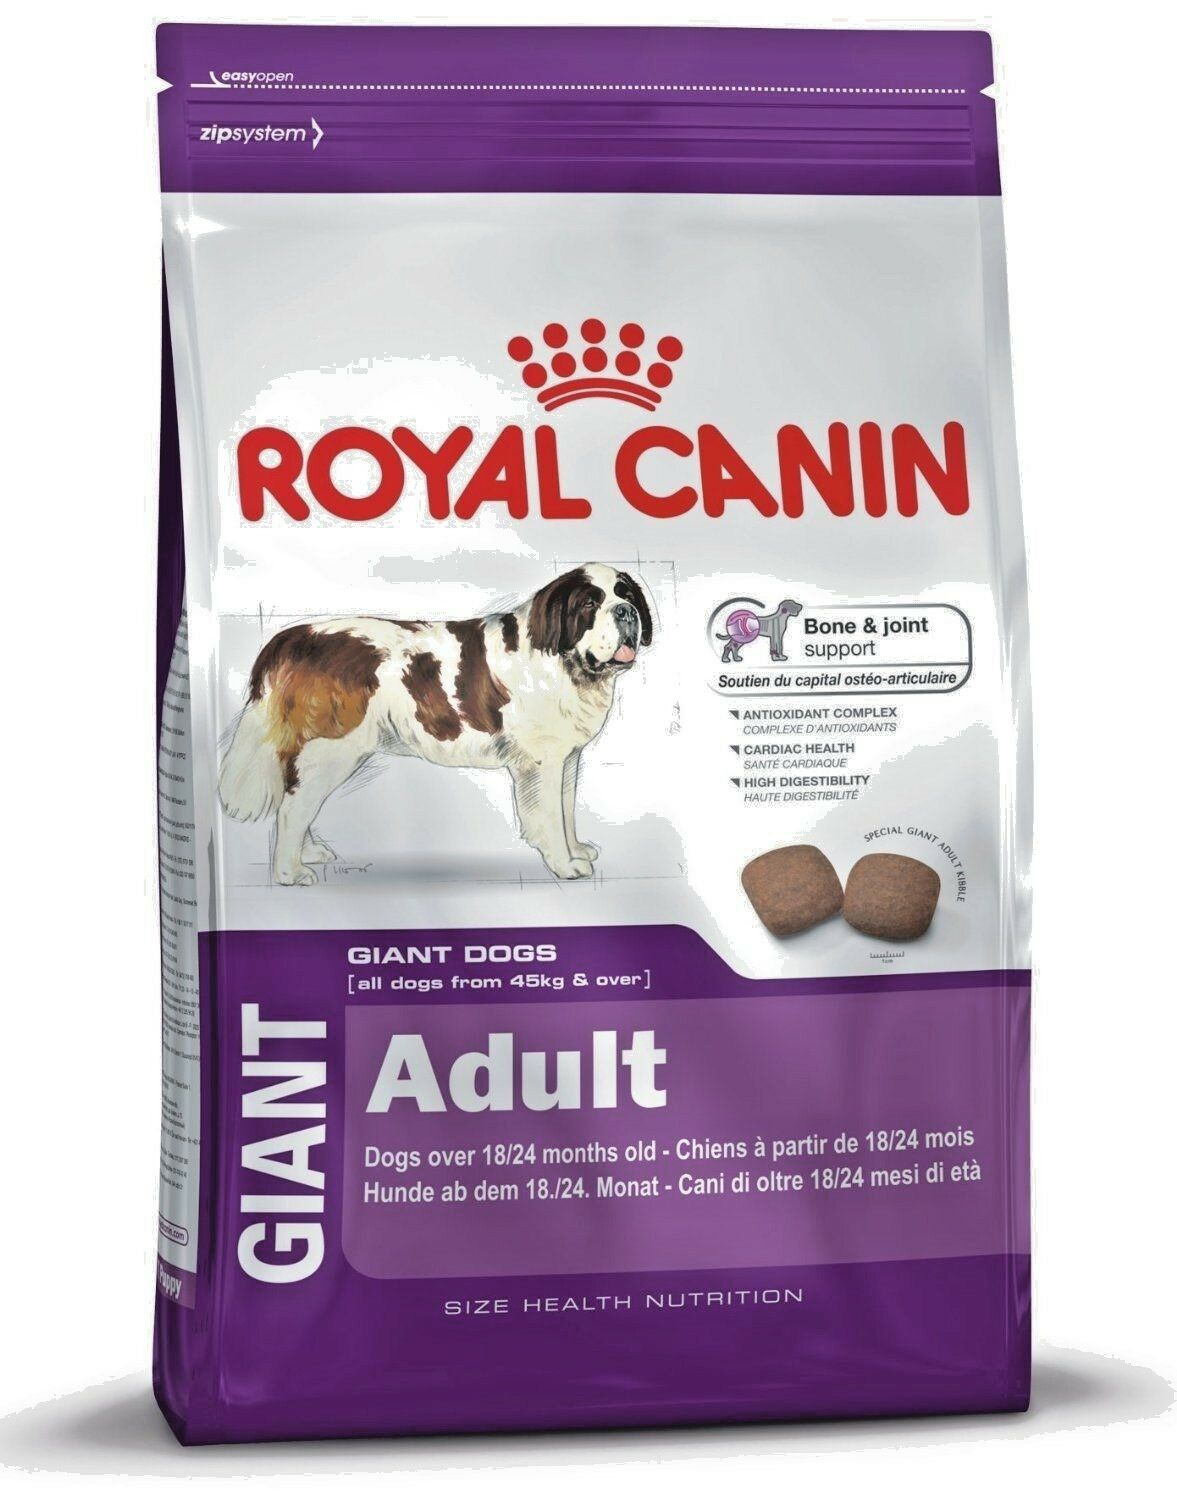 Giant Adult Kg 15 Royal canin